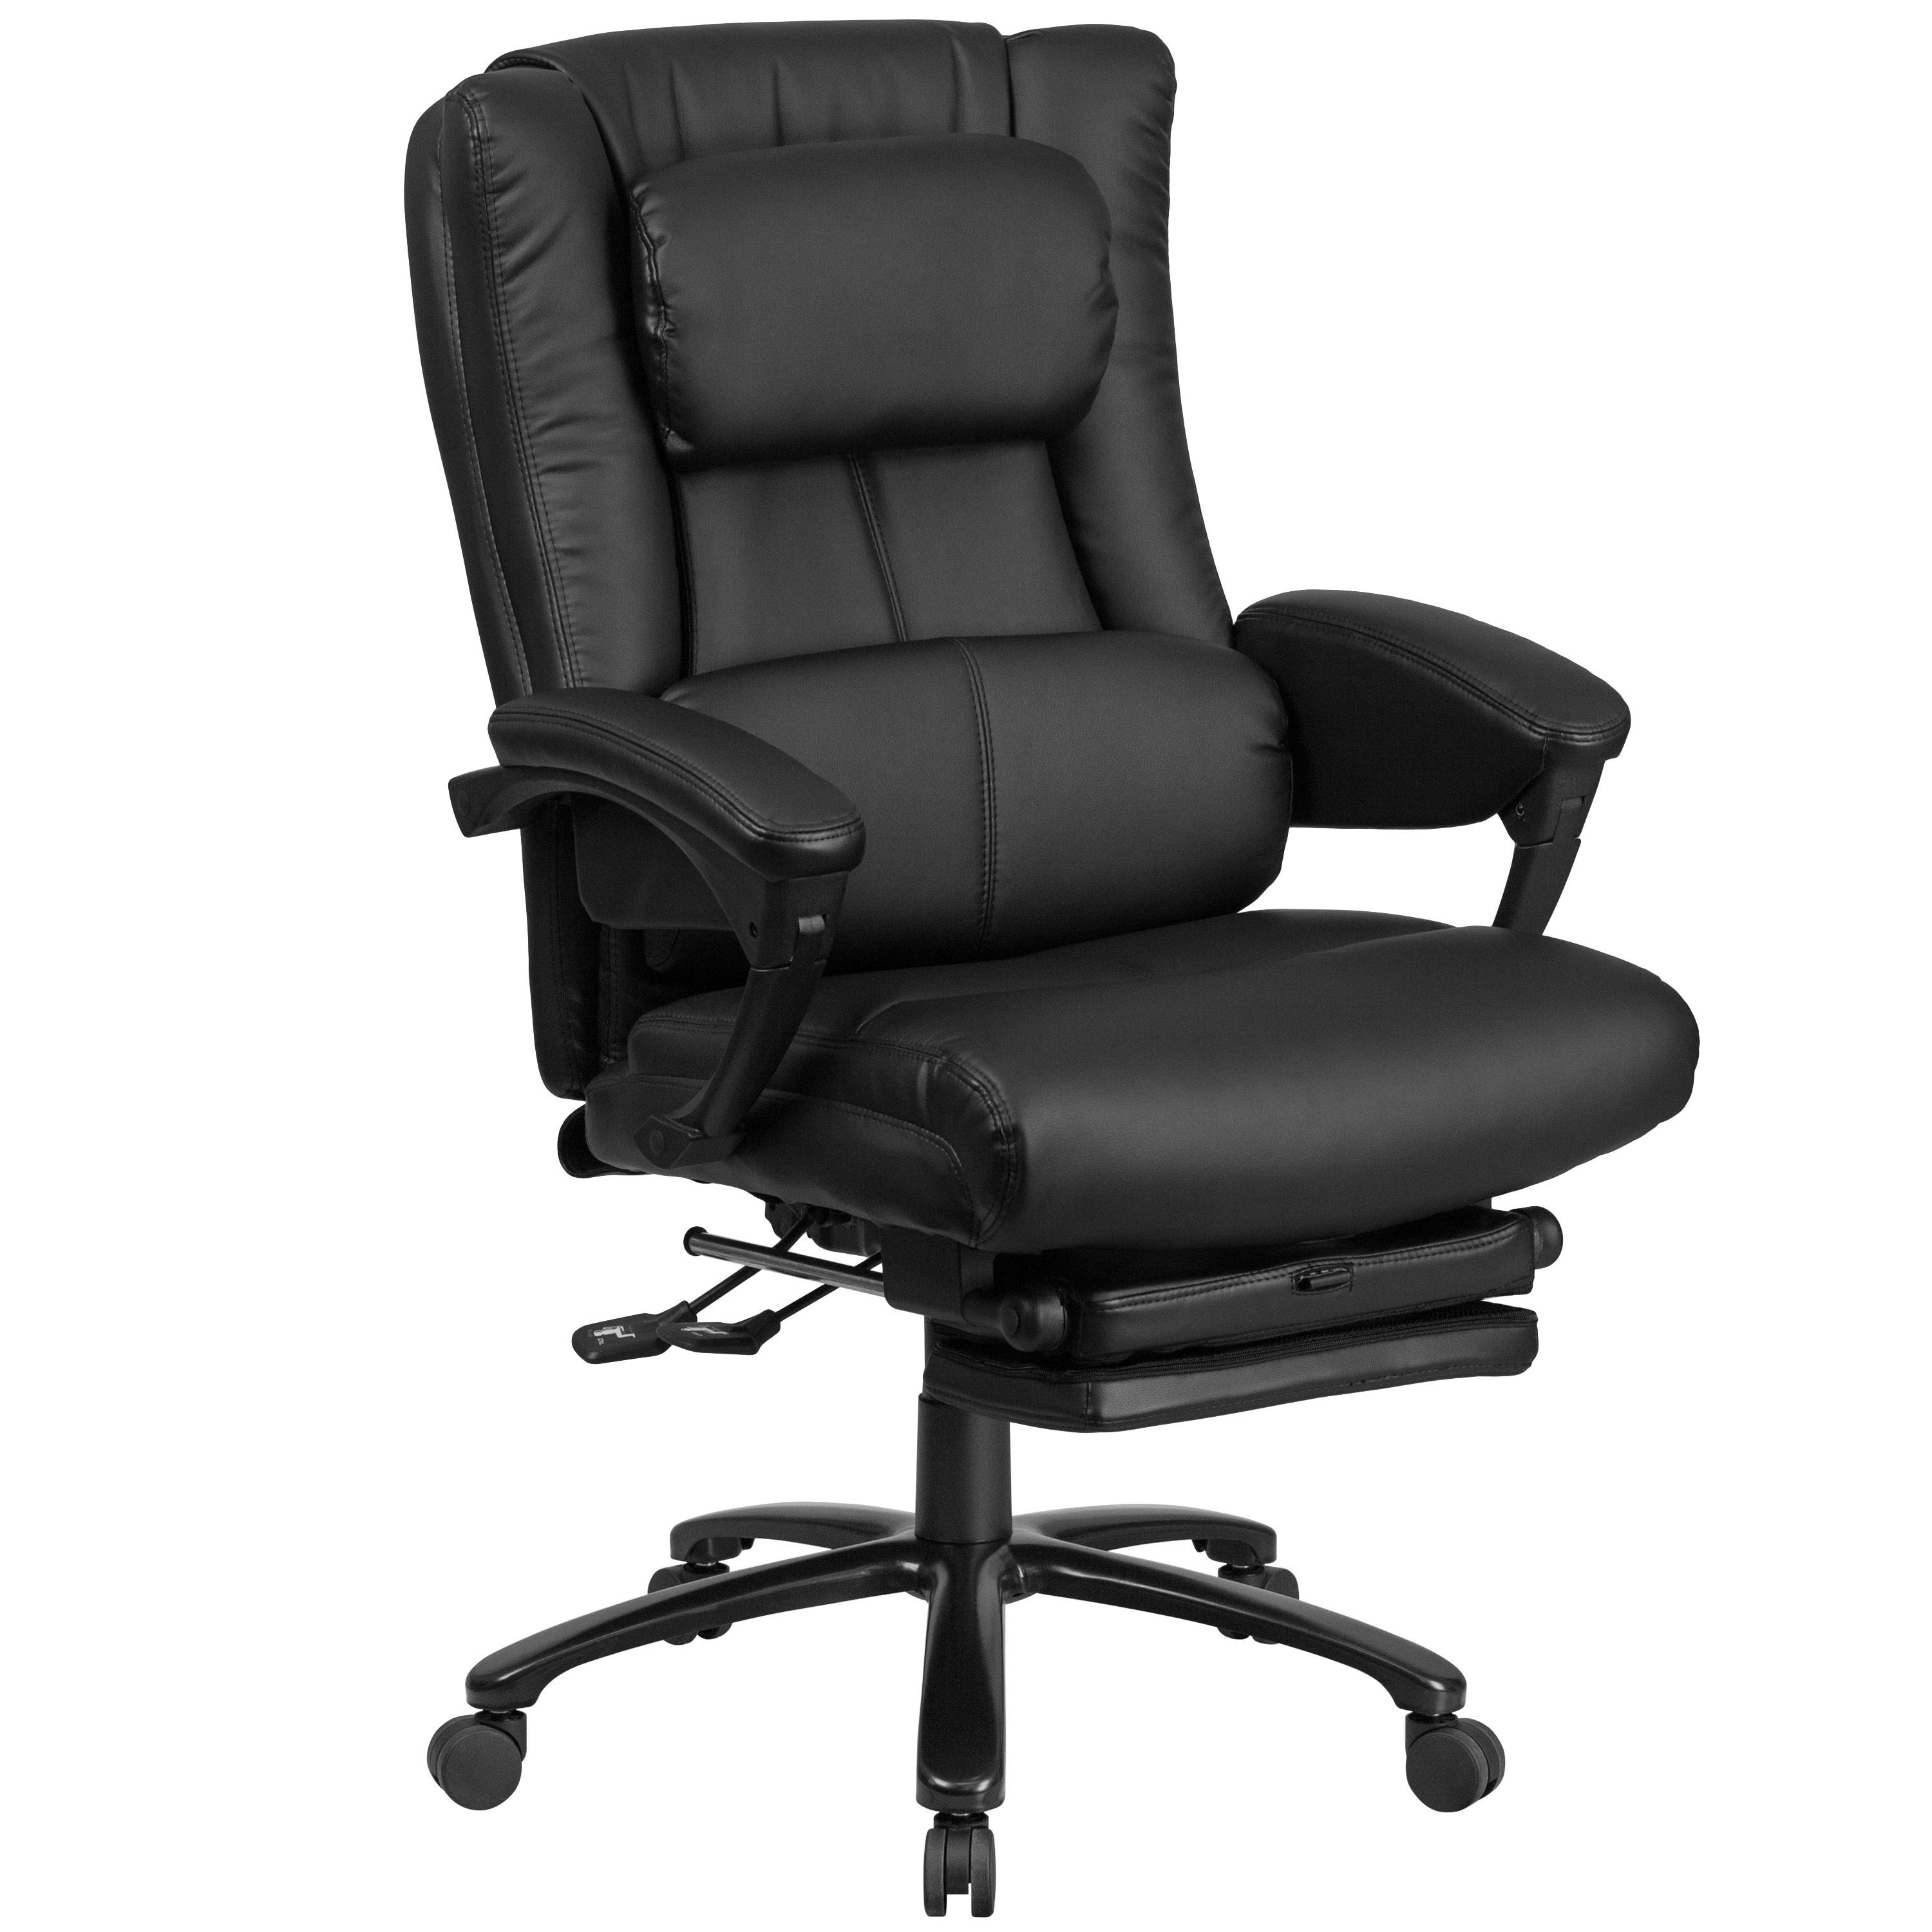 reclining office chairs. Flash Furniture Reclining Office Chair Chairs